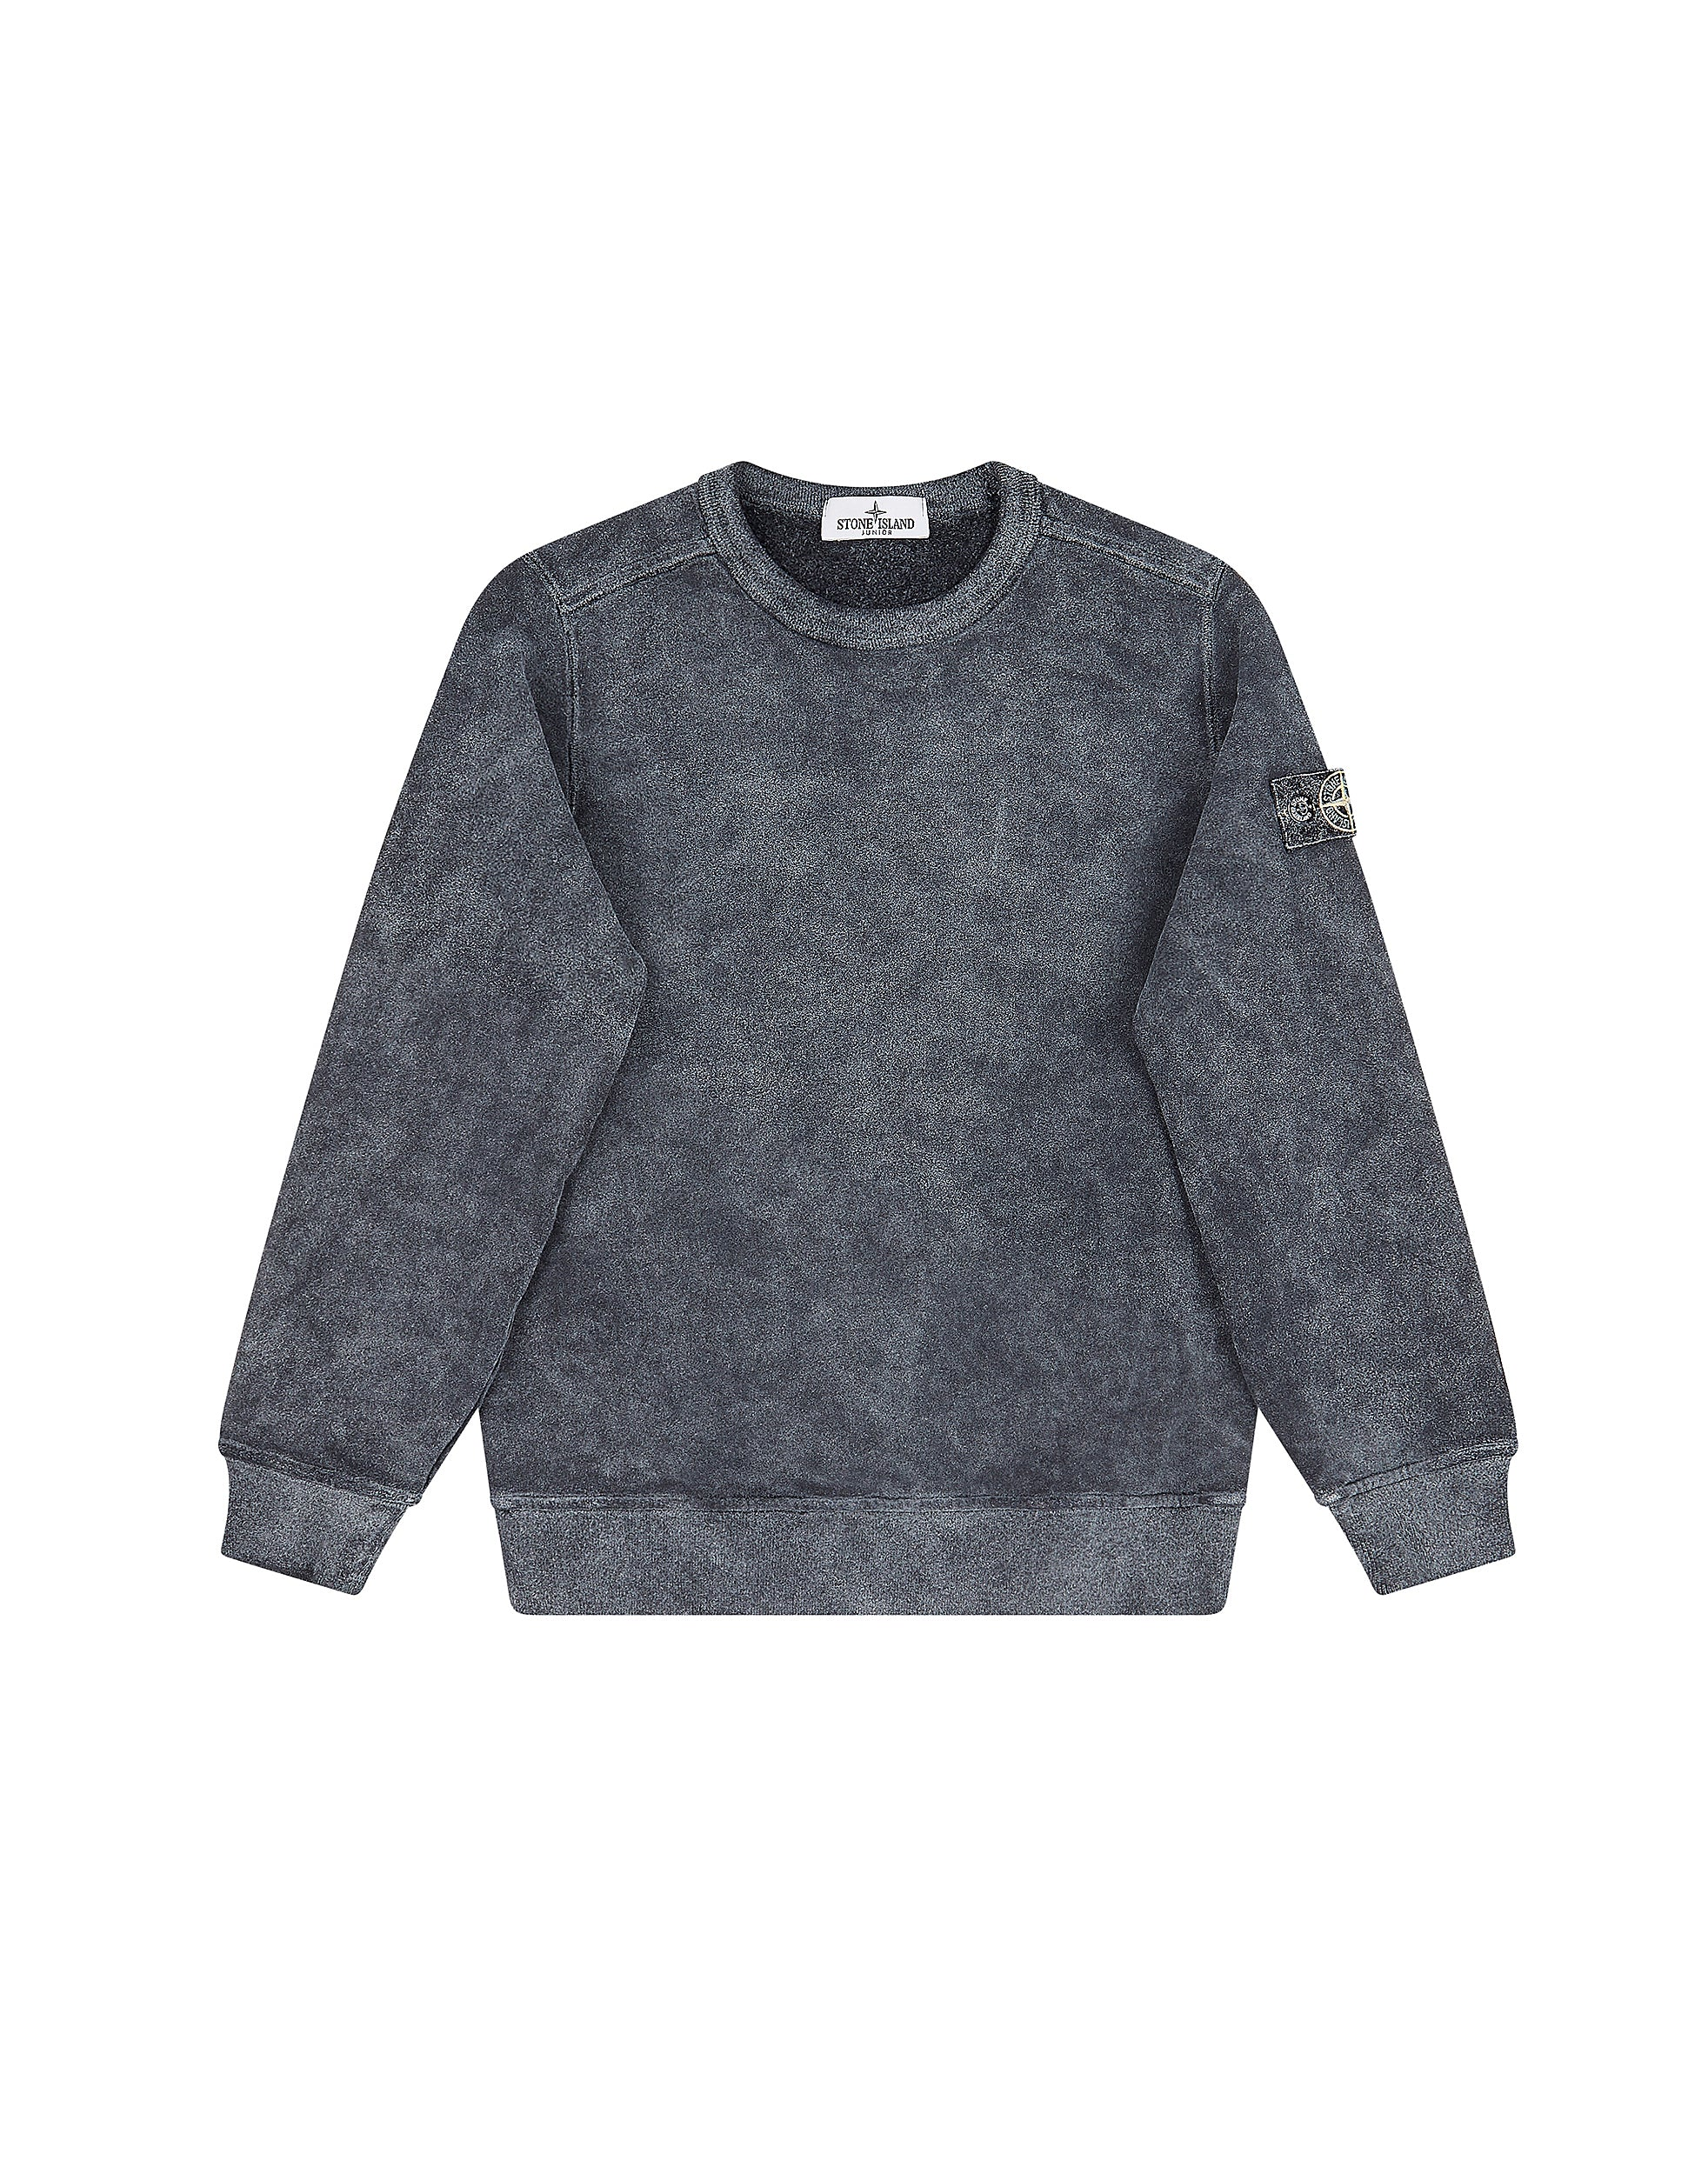 60939 DUST COLOUR FROST FINISH Sweatshirt in Black